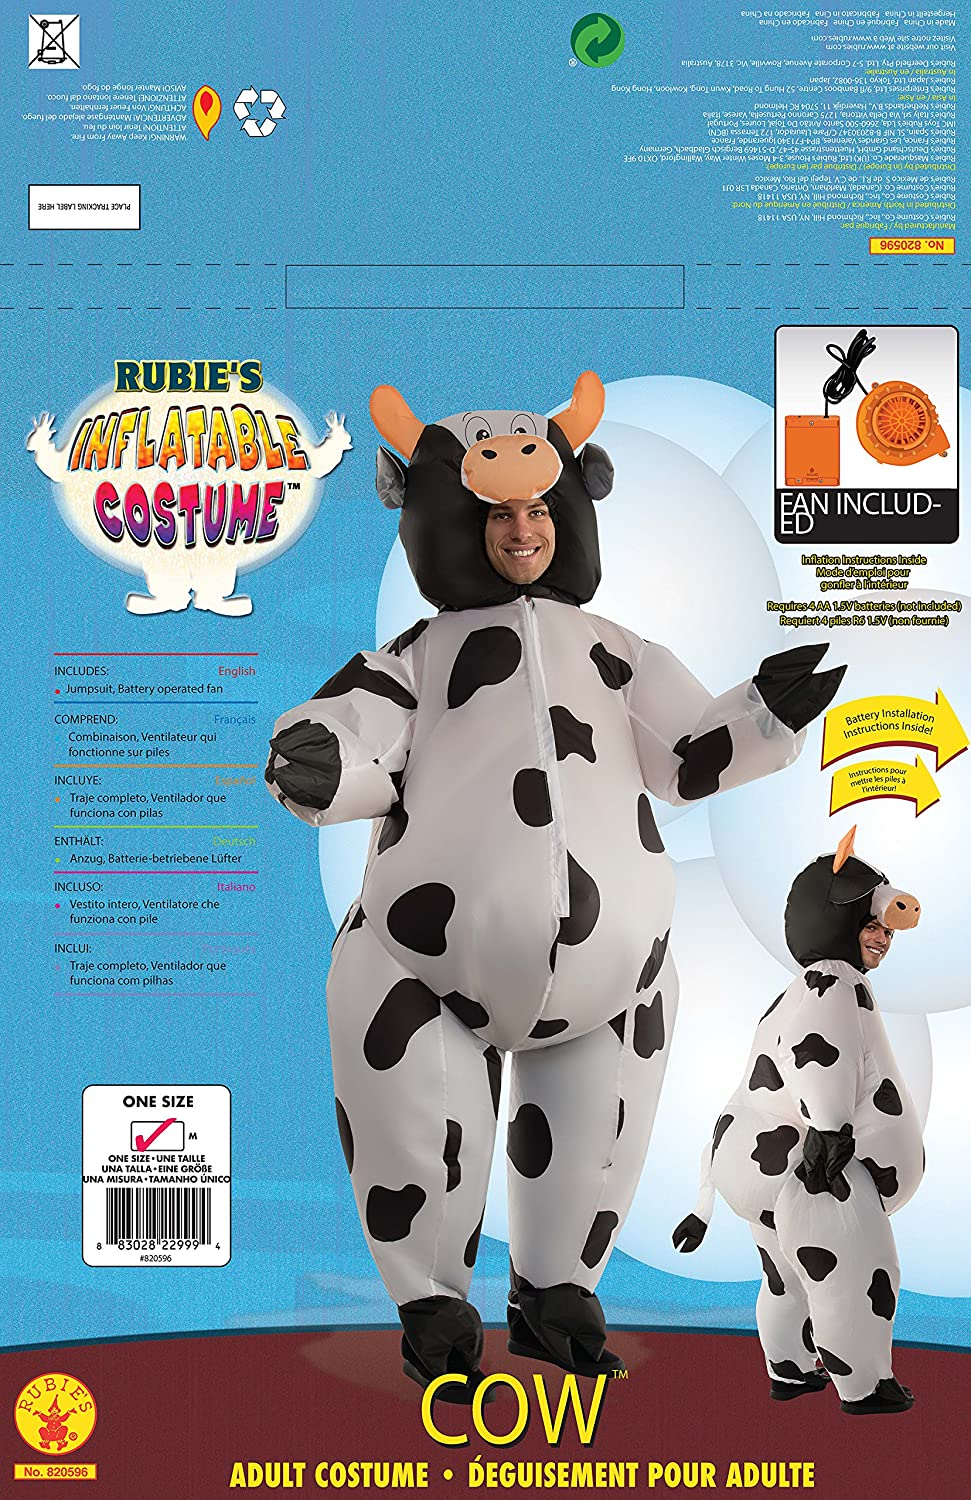 & Amazon.com: Rubieu0027s Menu0027s Inflatable Cow Costume Standard: Clothing